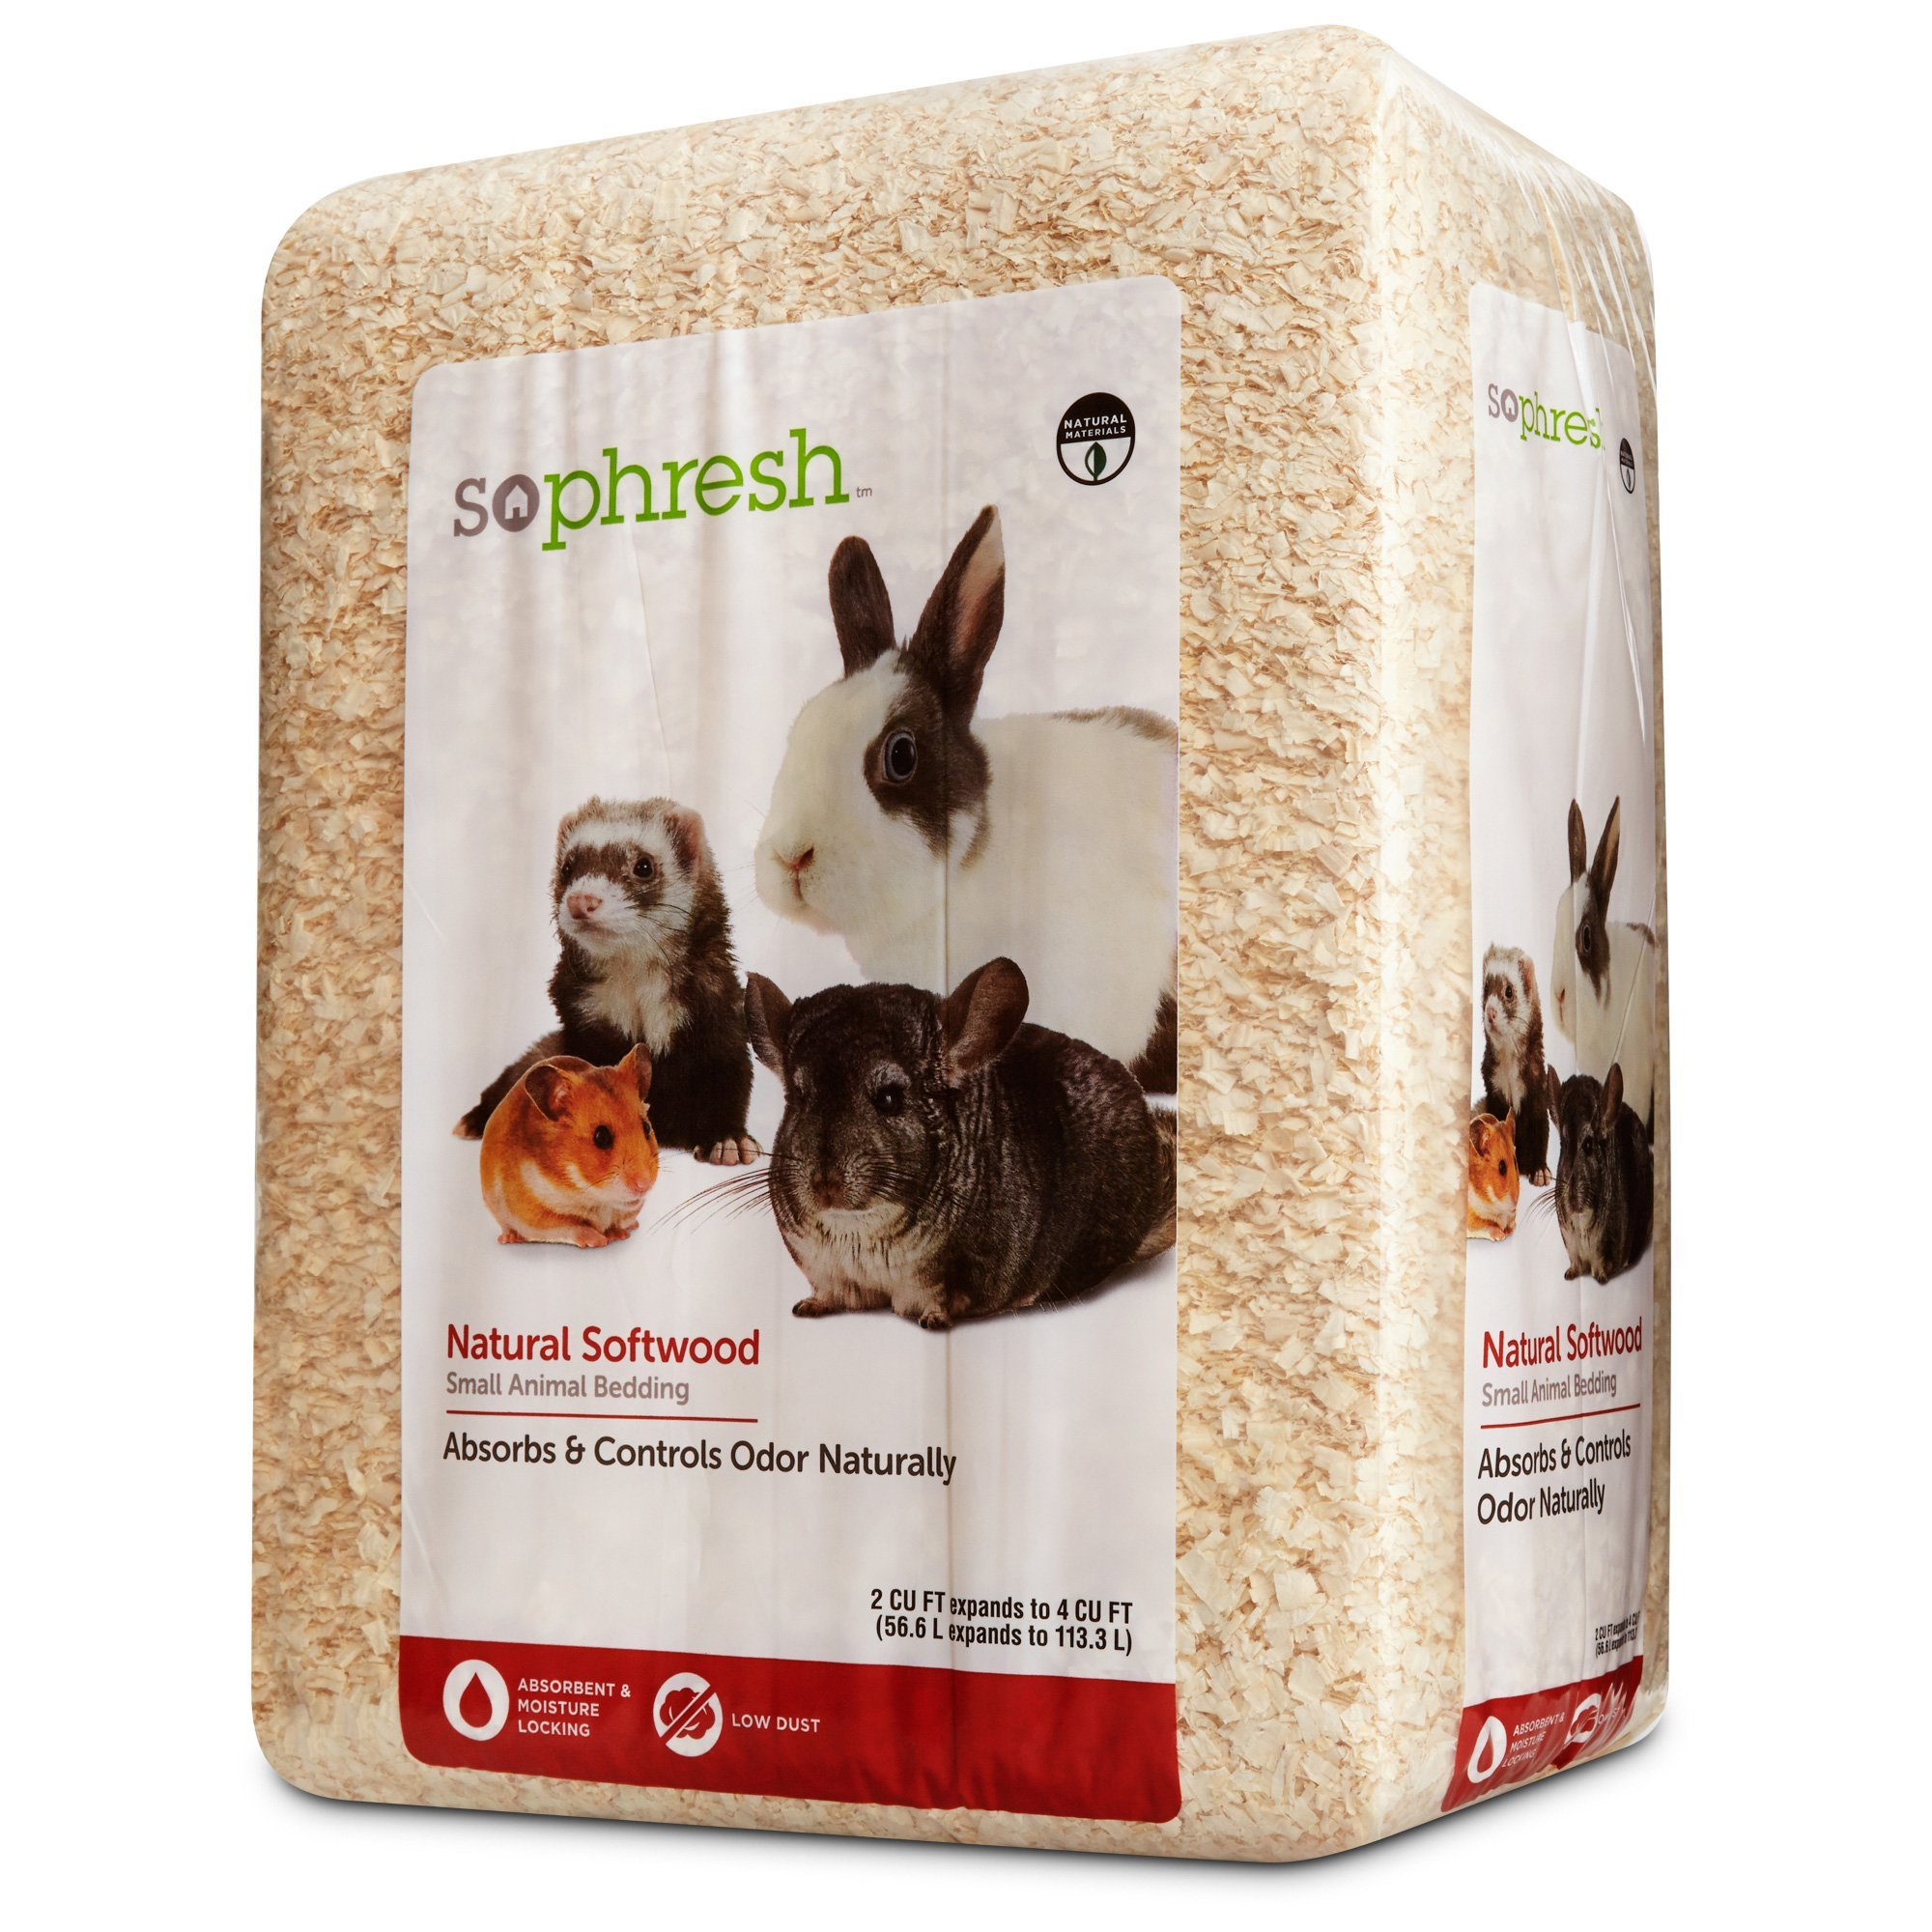 So Phresh Natural Softwood Small Animal Bedding, 56.6 Liters (500 cu. in.)